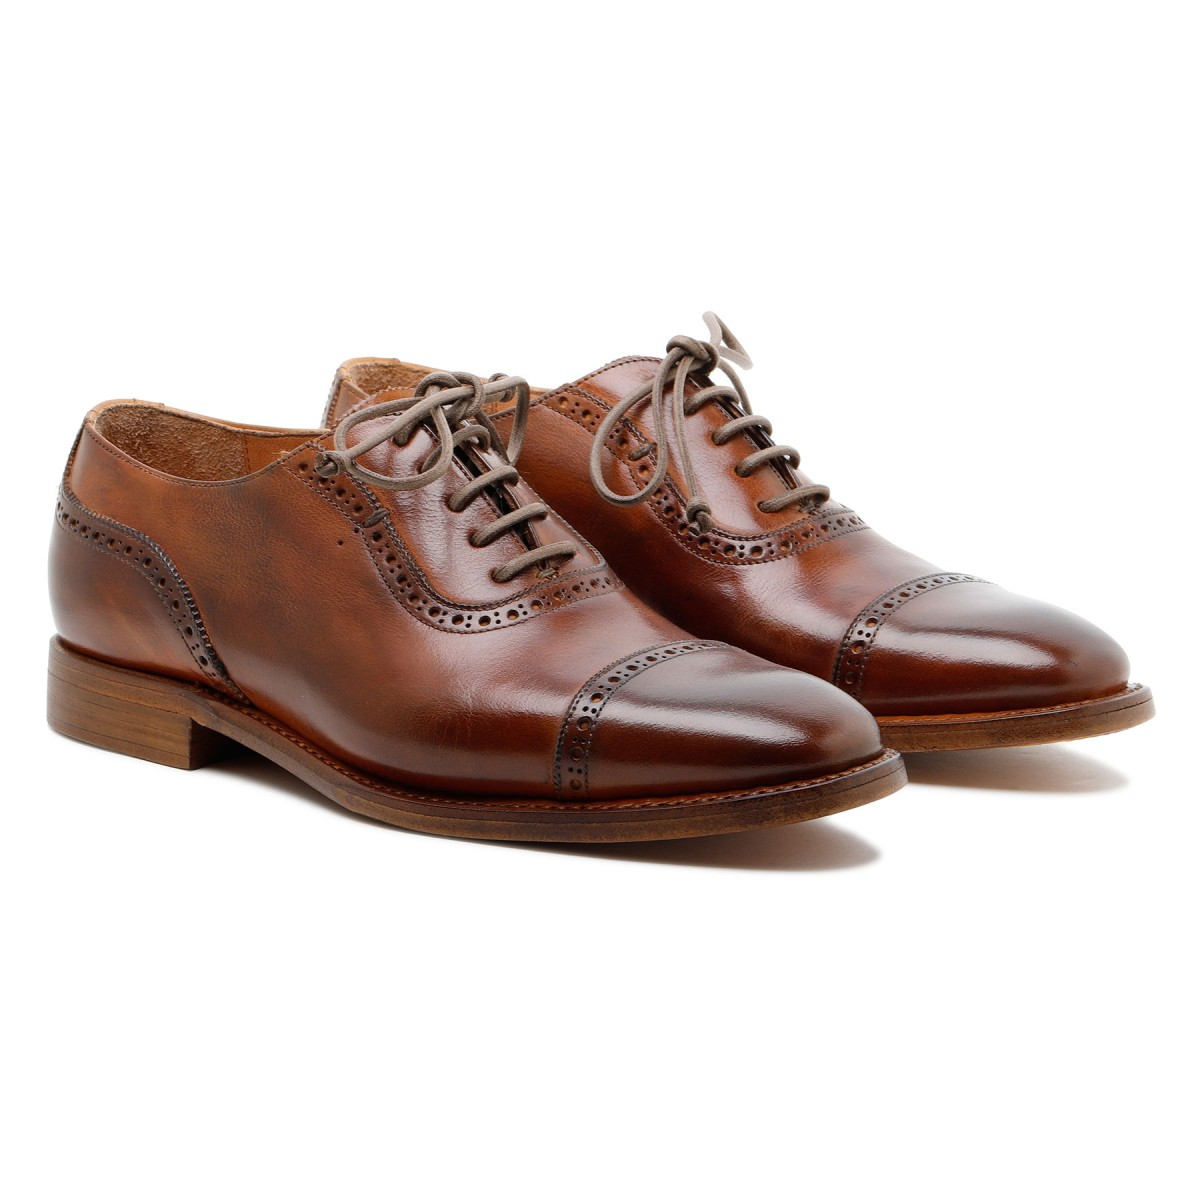 Lione brown leather lace-up shoes